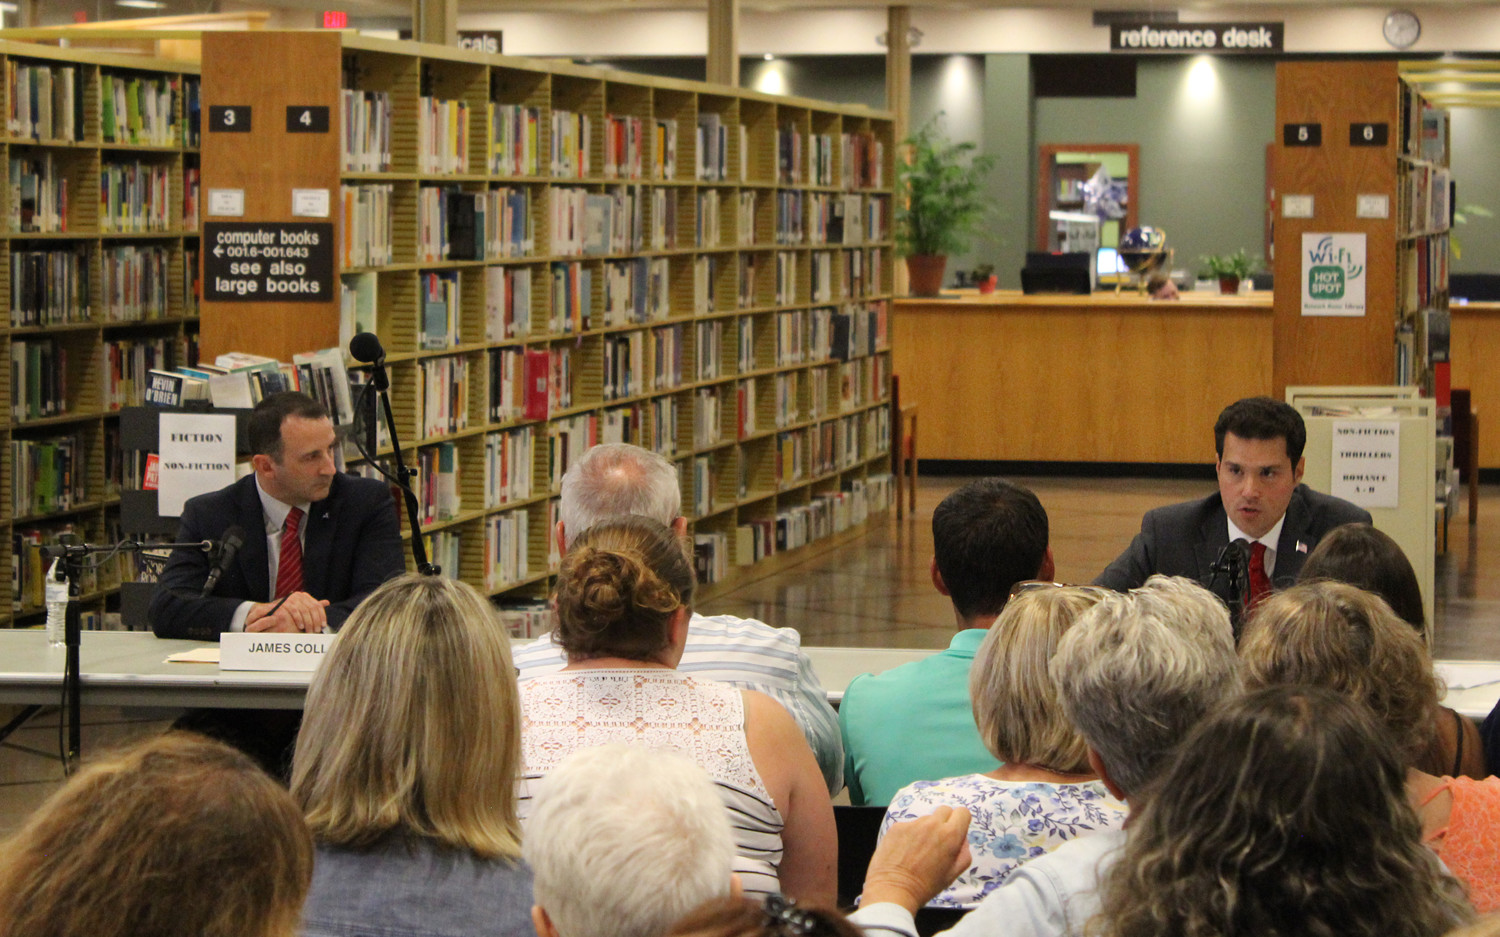 John Mikulin and James Coll, both Republican candidates for the State Assembly's 17th District, sparred at a public forum at the East Meadow Public Library, sponsored by the Nassau County League of Women Voters, on Aug. 29.